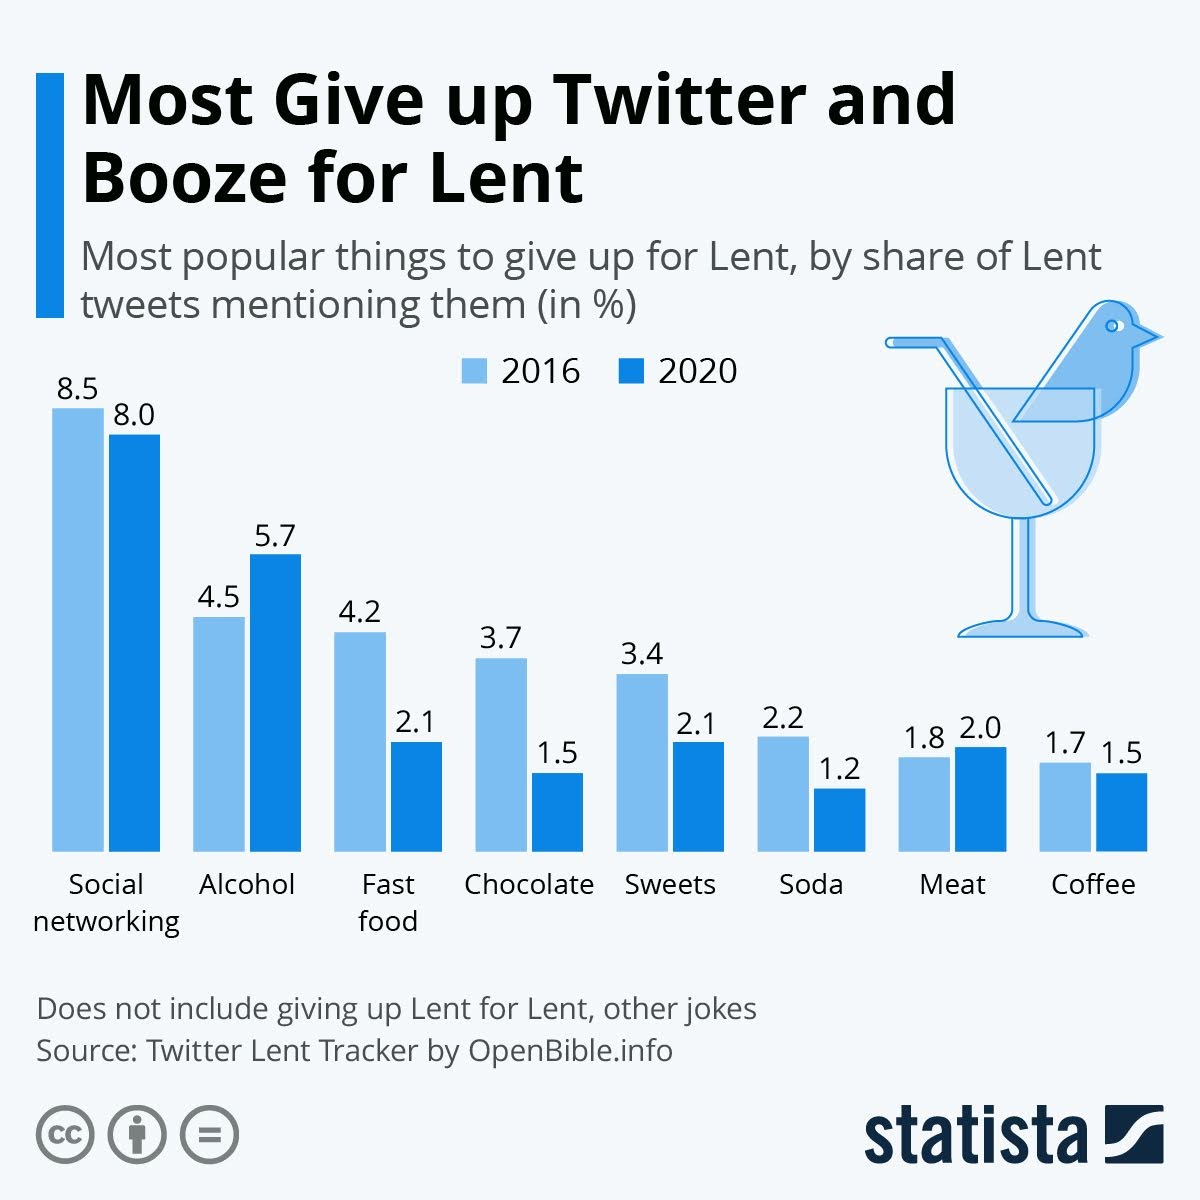 most-give-up-twitter-and-booze-for-lent-infographic